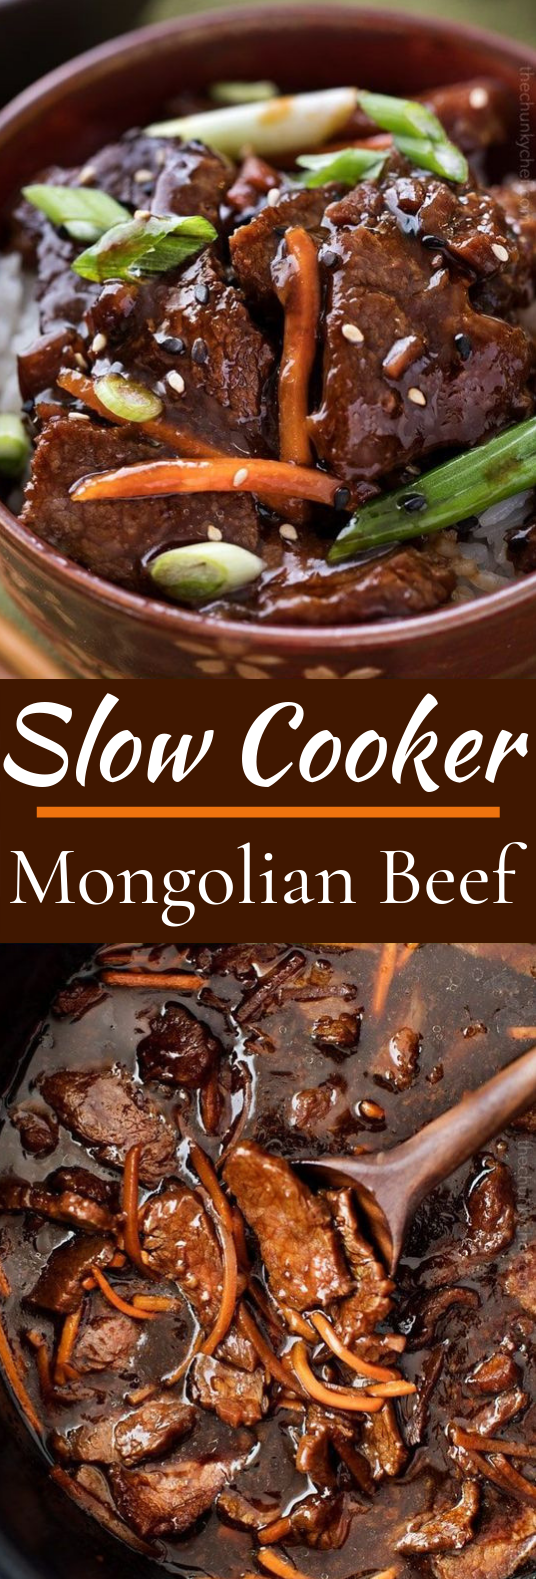 Easy Slow Cooker Mongolian Beef #dinner #beef